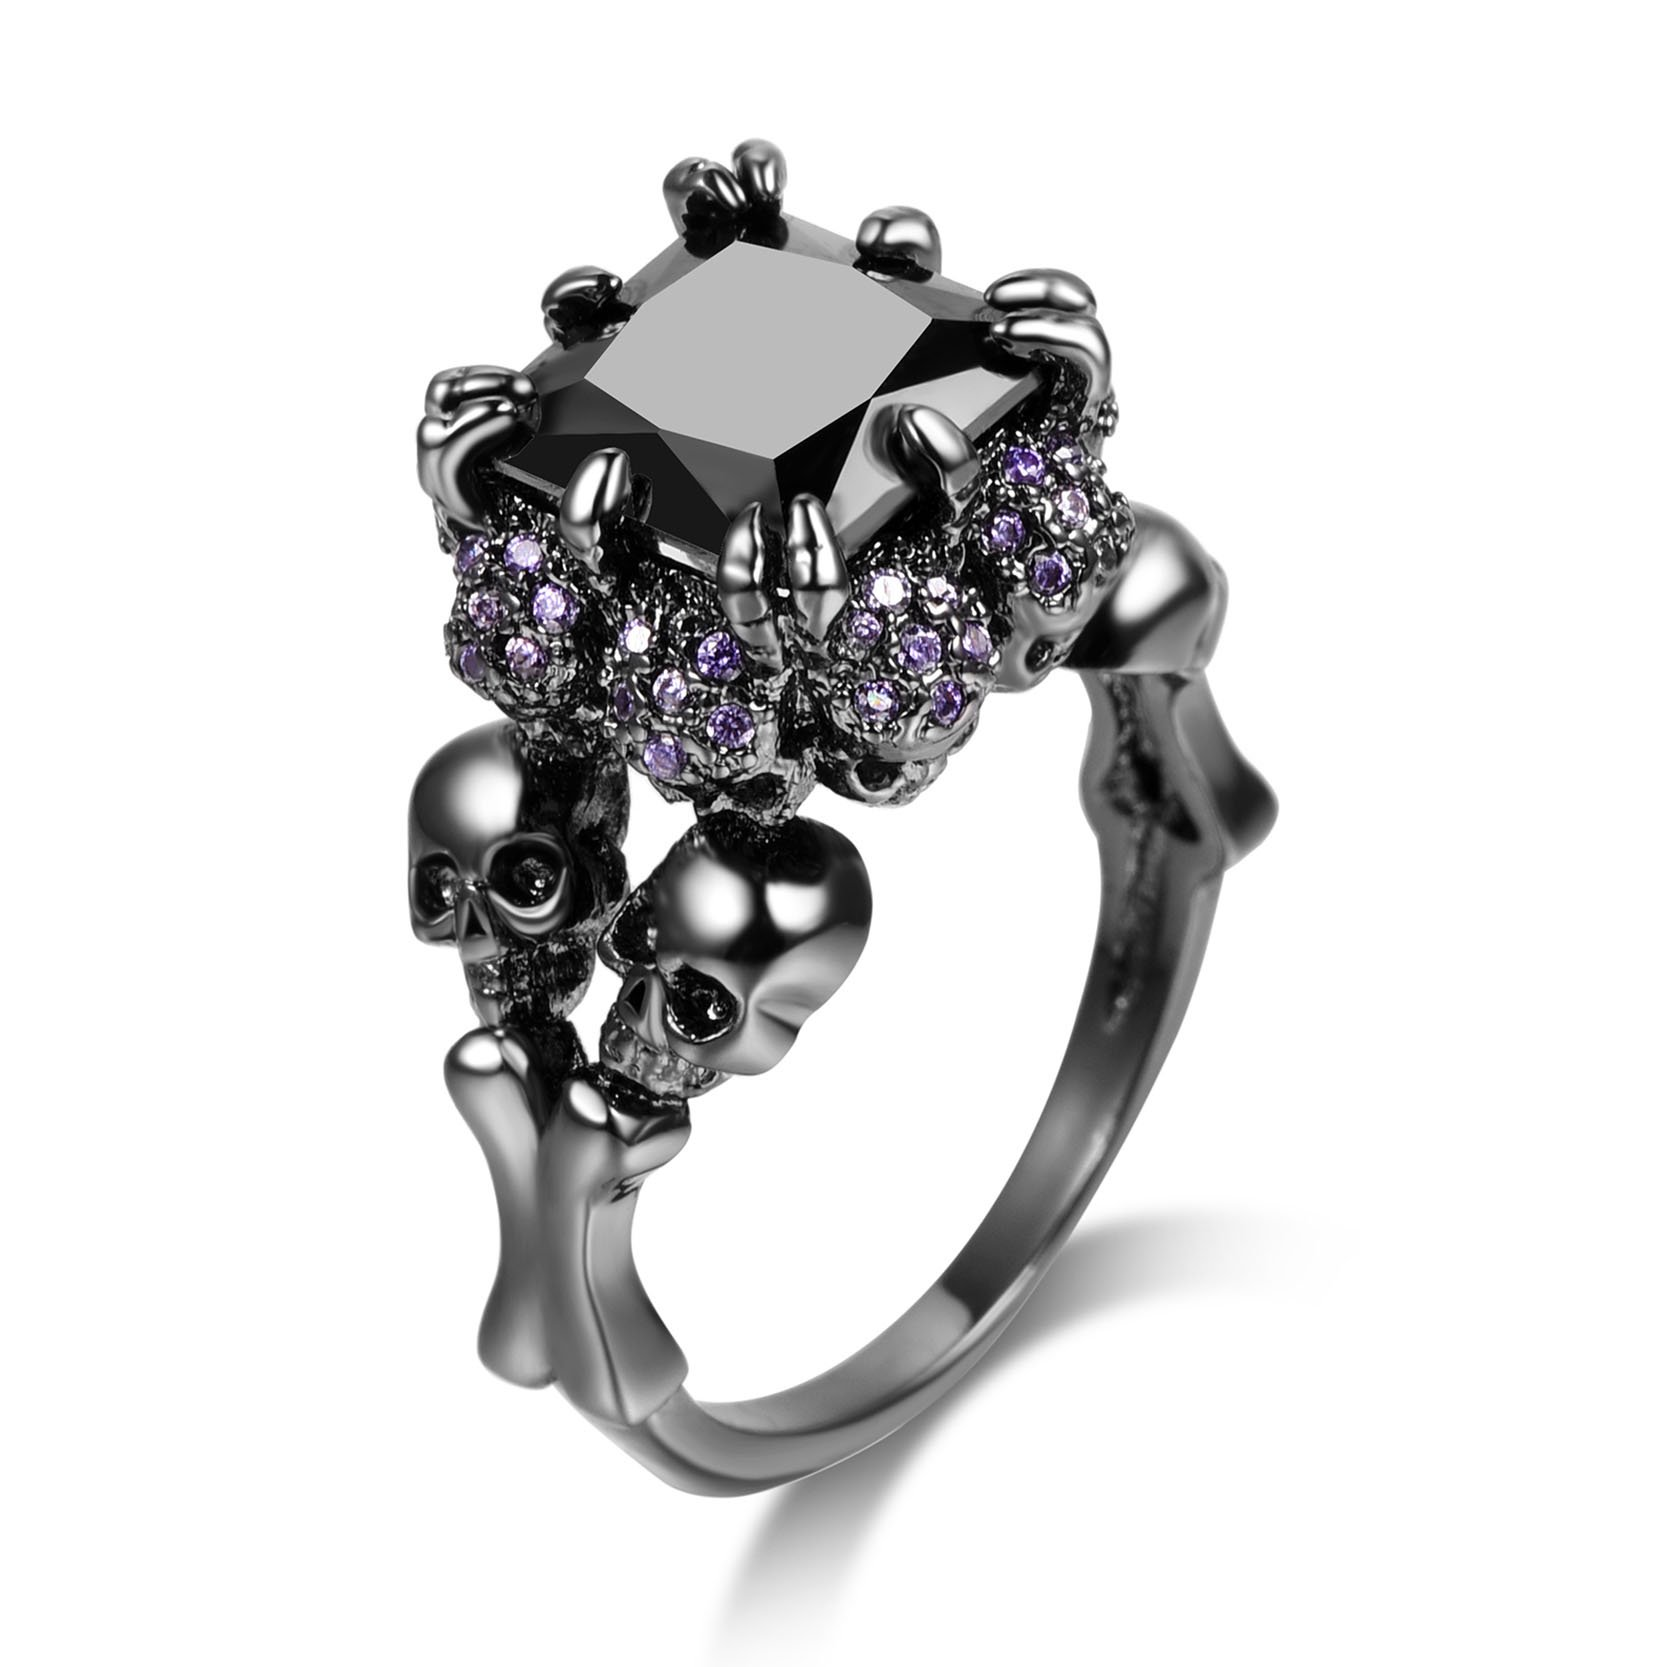 DALARAN High Polish Black Skull Ring for Women Size 5 Purple Crystal All Around Gothic Style